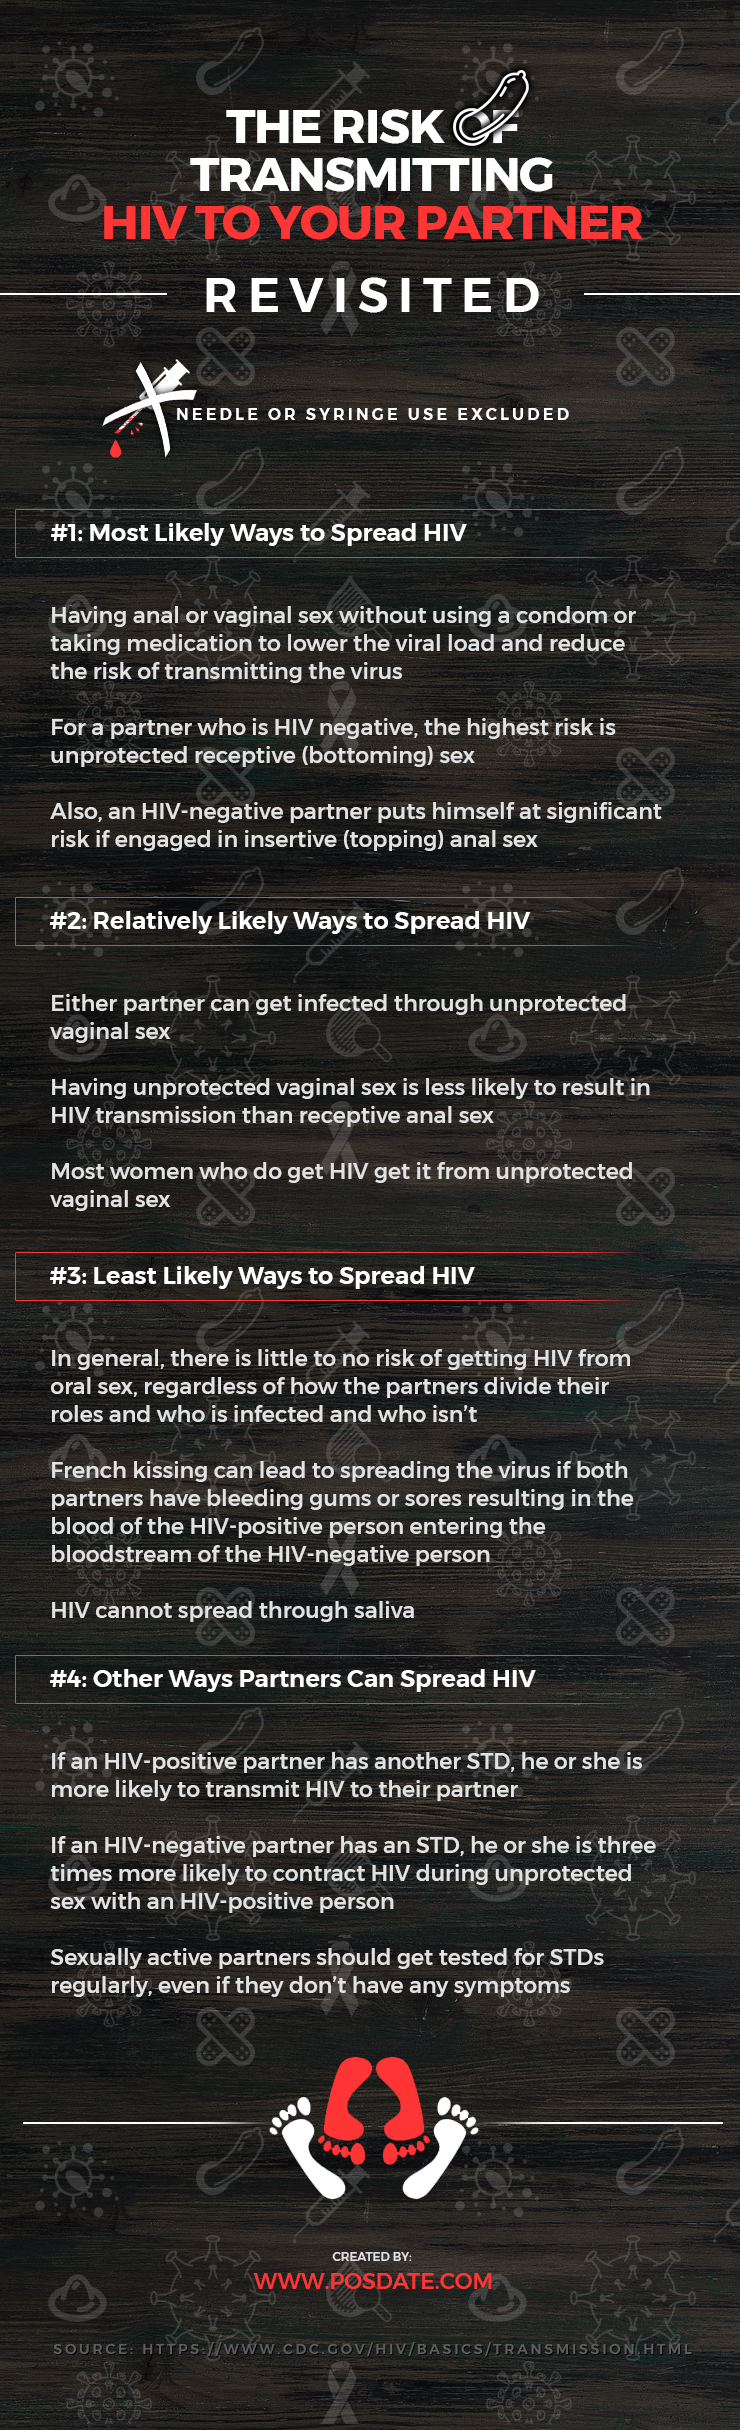 The Risk of Transmitting HIV to your Partner Revisited